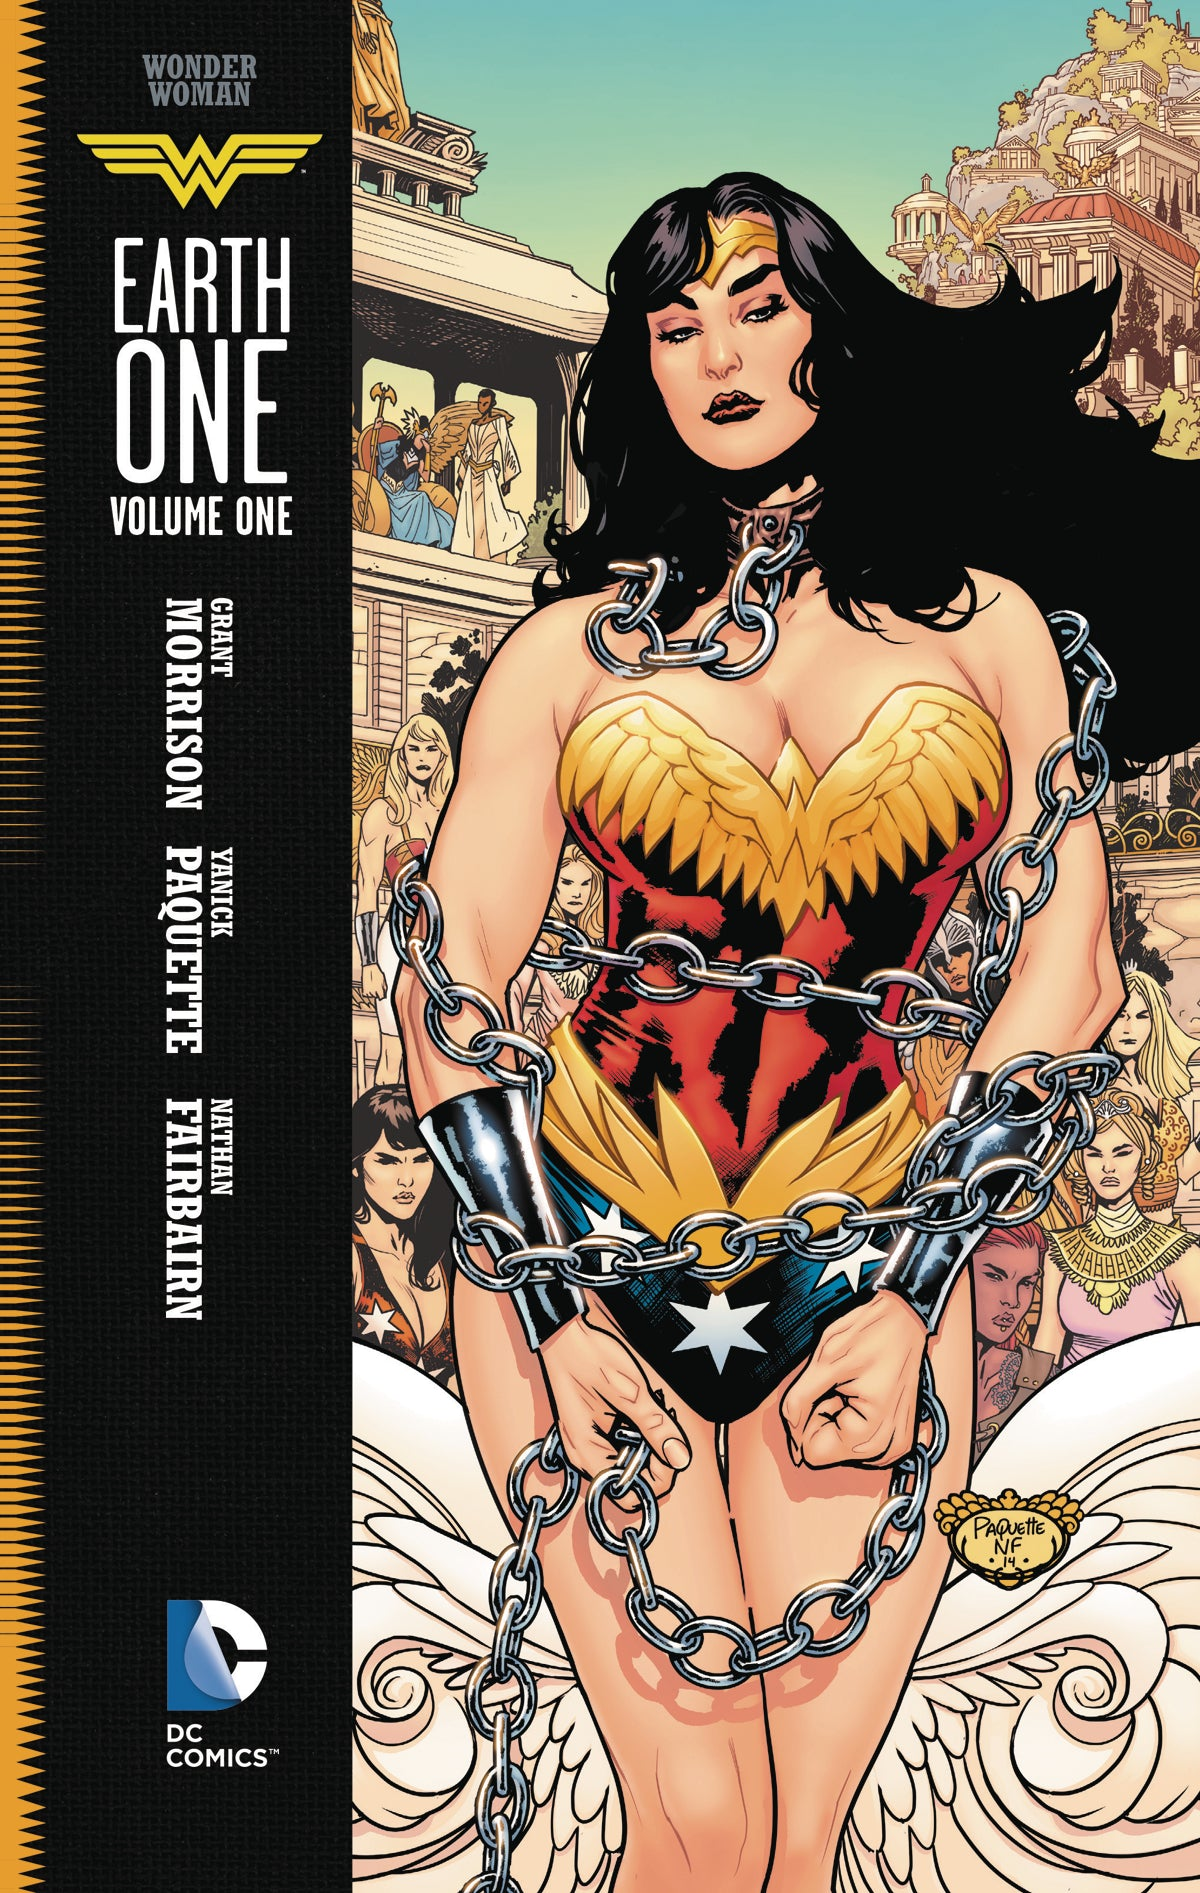 WONDER WOMAN EARTH ONE TP VOL 01 | Game Master's Emporium (The New GME)